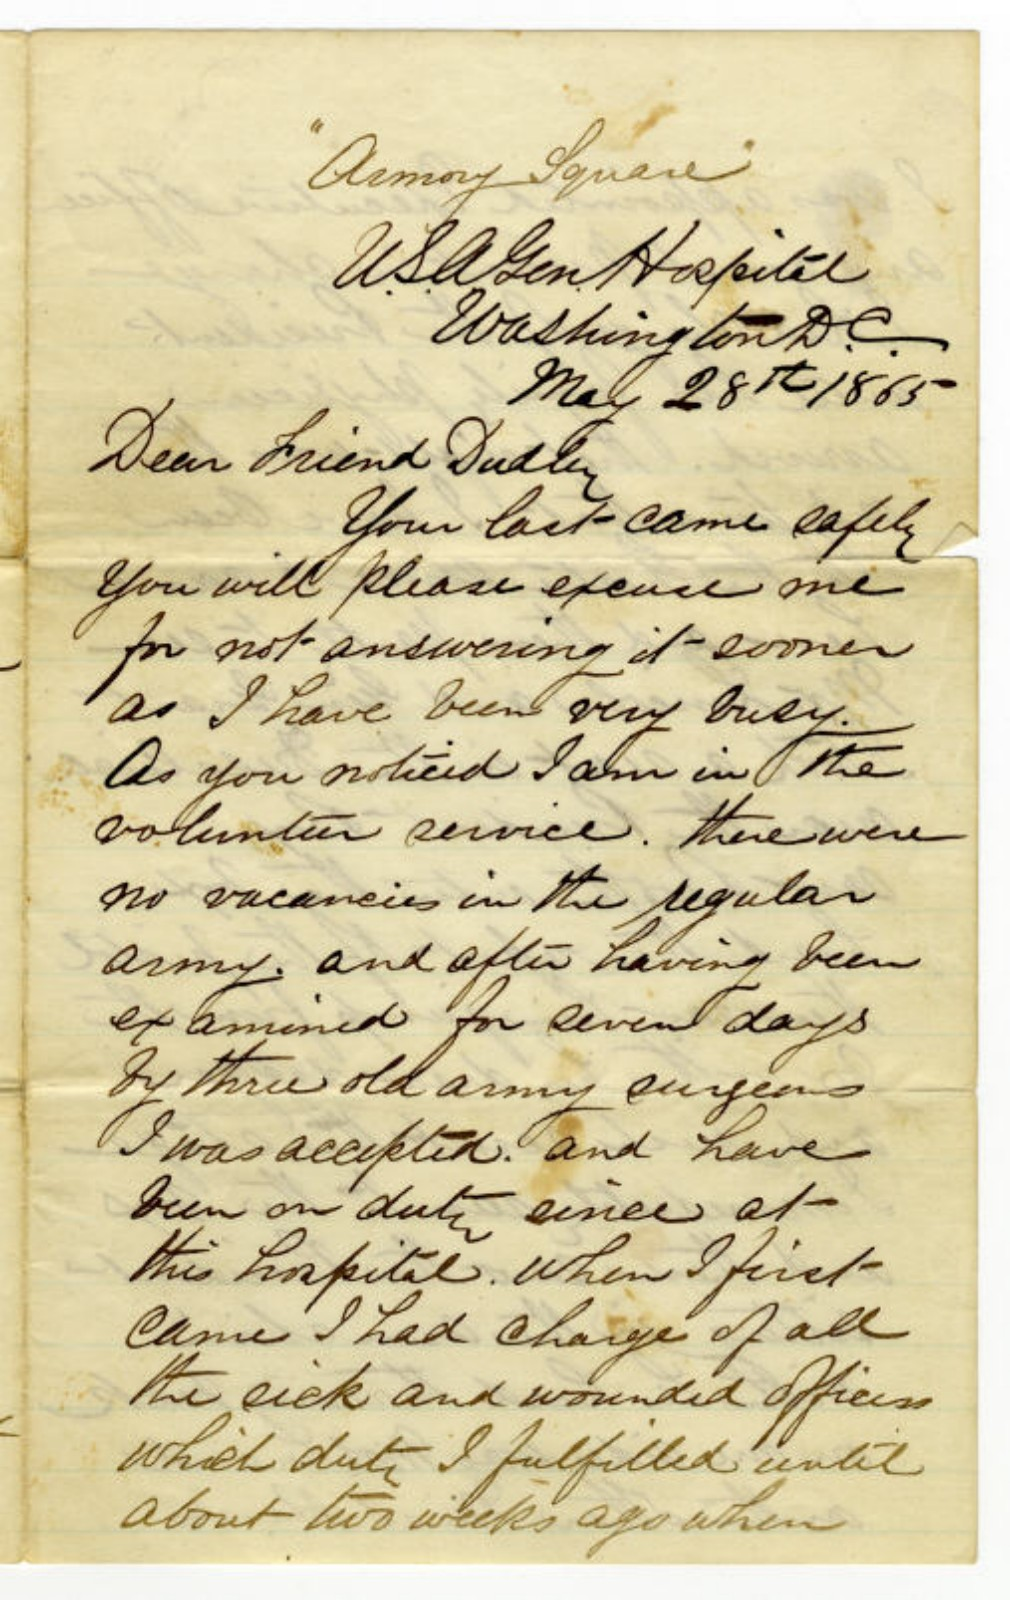 The Eyewitness Account of Abraham Lincoln's Assassination by the Physician Who Treated Him at the Scene